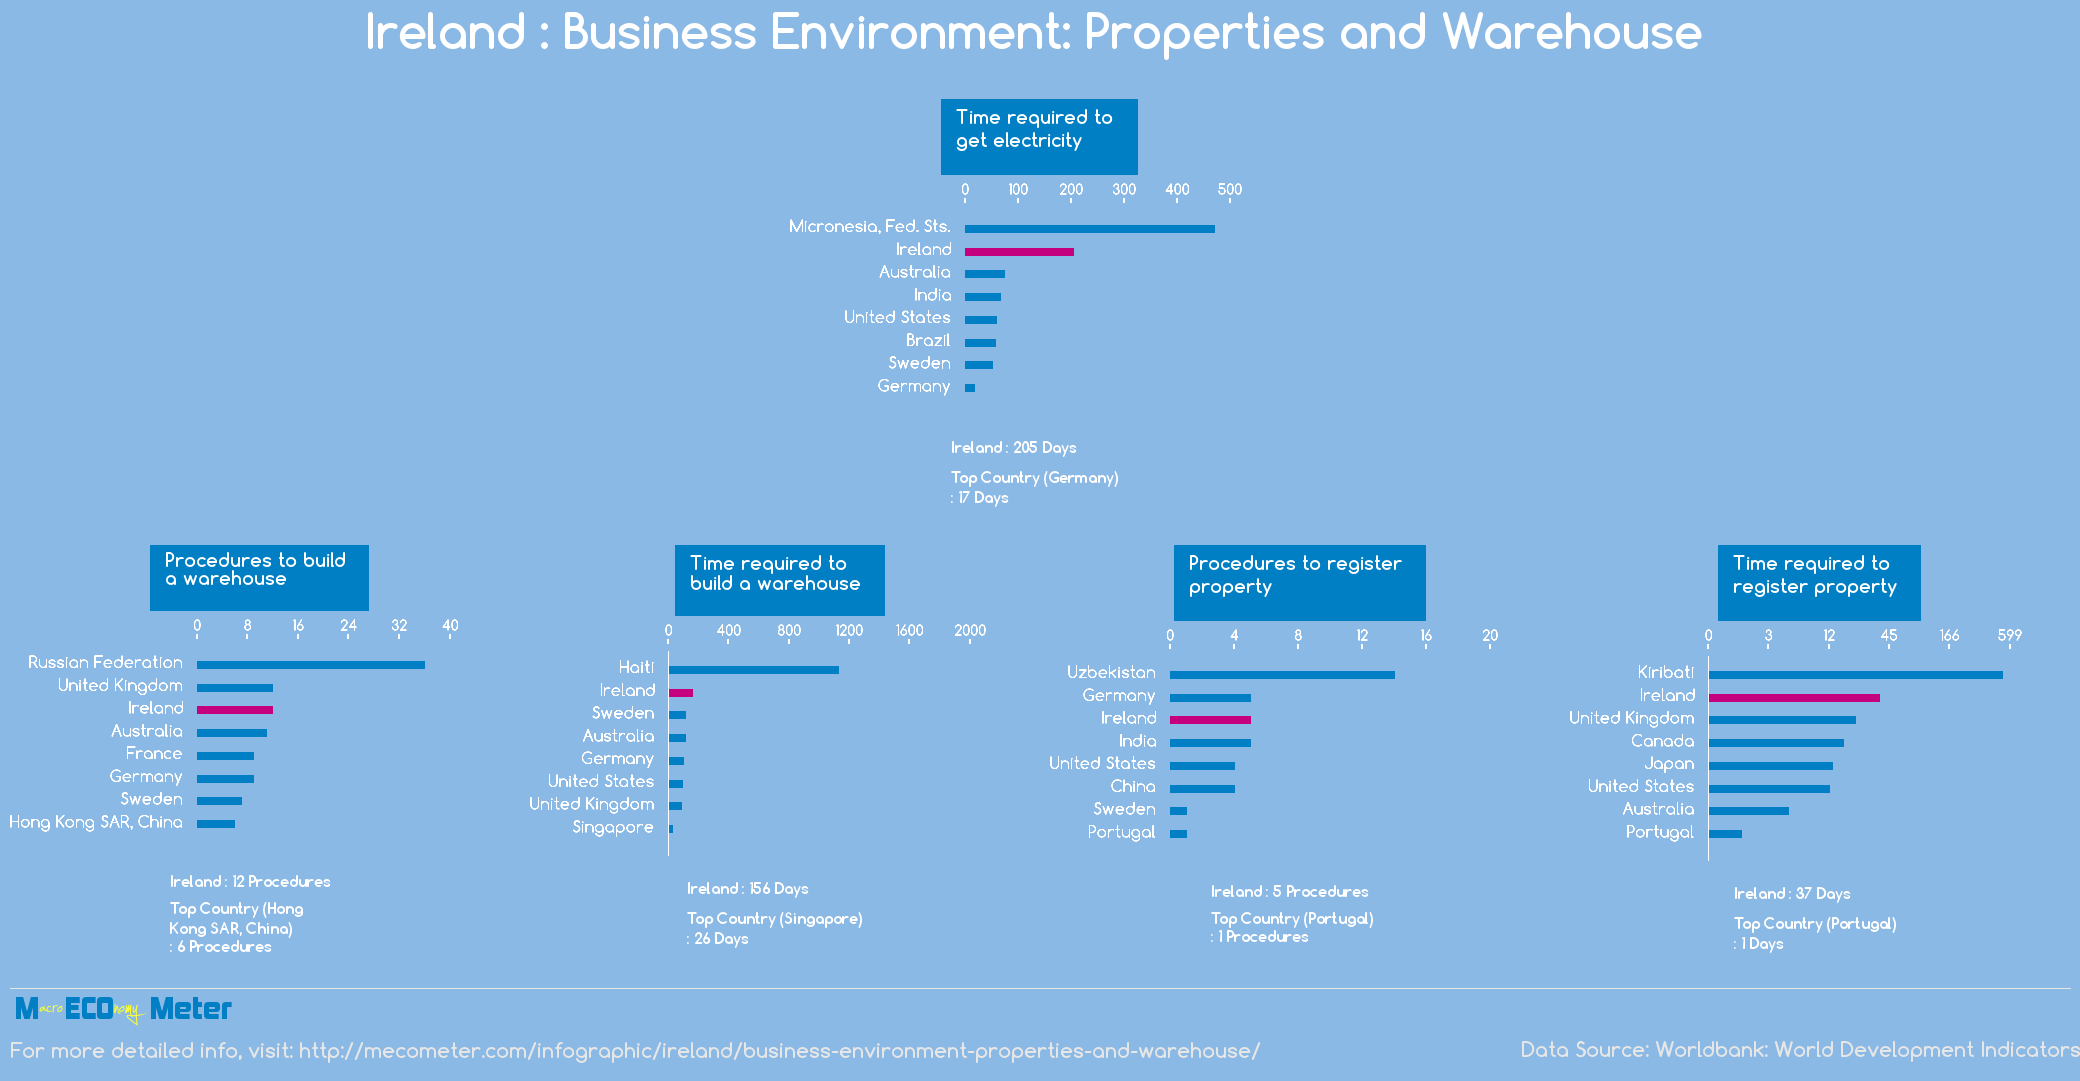 Ireland : Business Environment: Properties and Warehouse